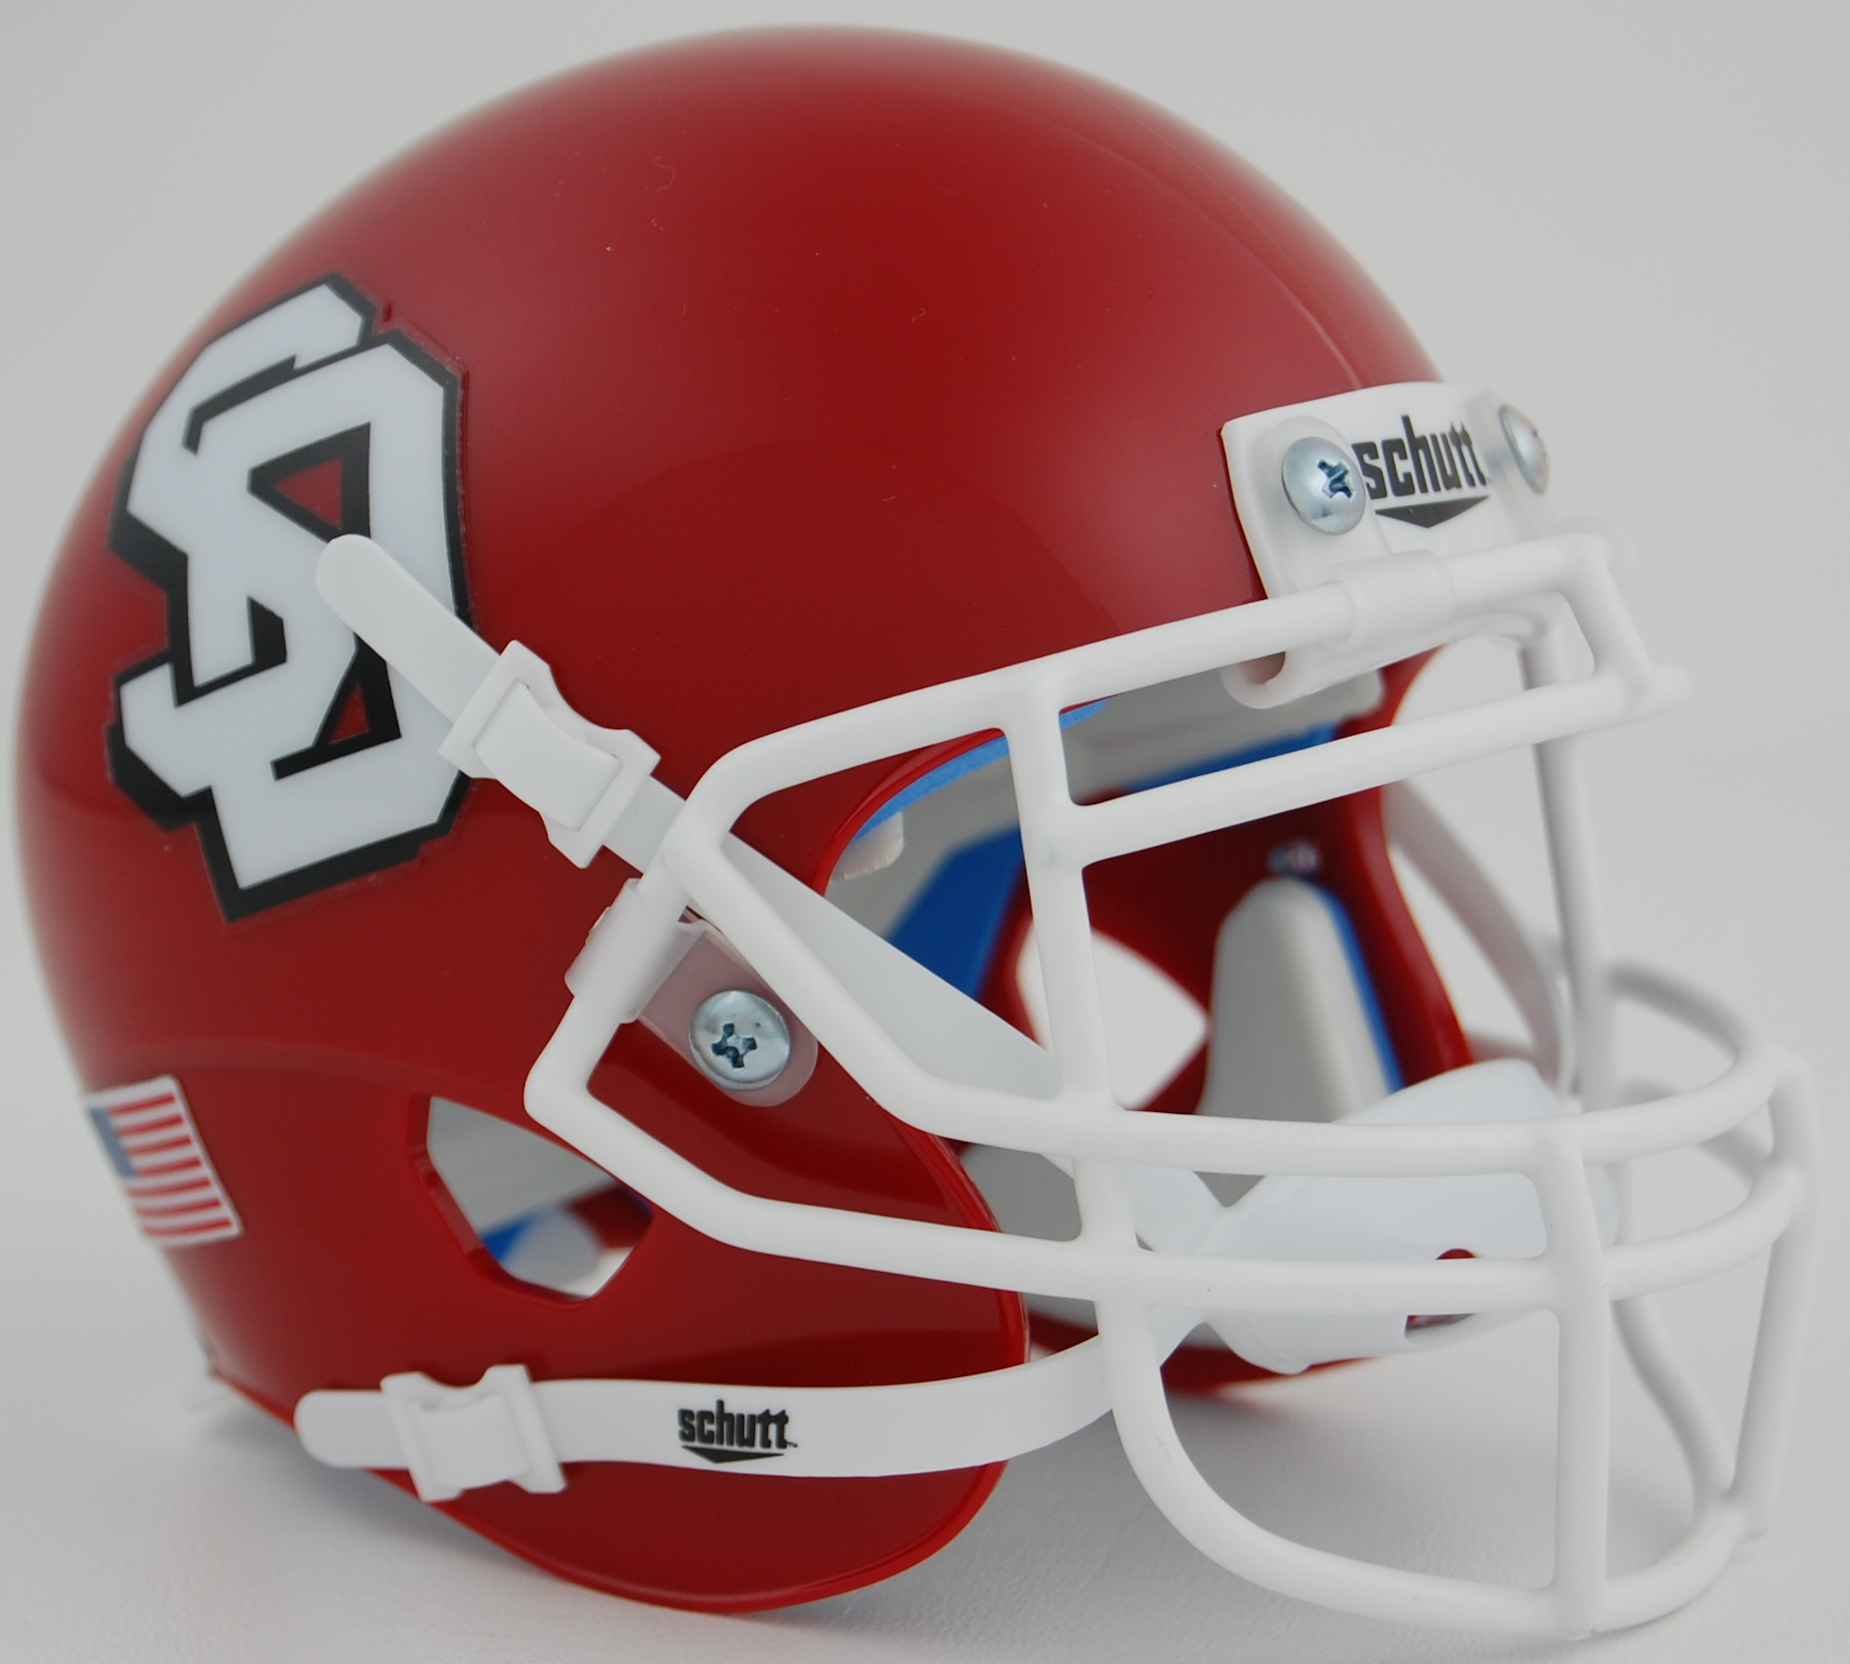 South Dakota Coyotes Full XP Replica Football Helmet Schutt